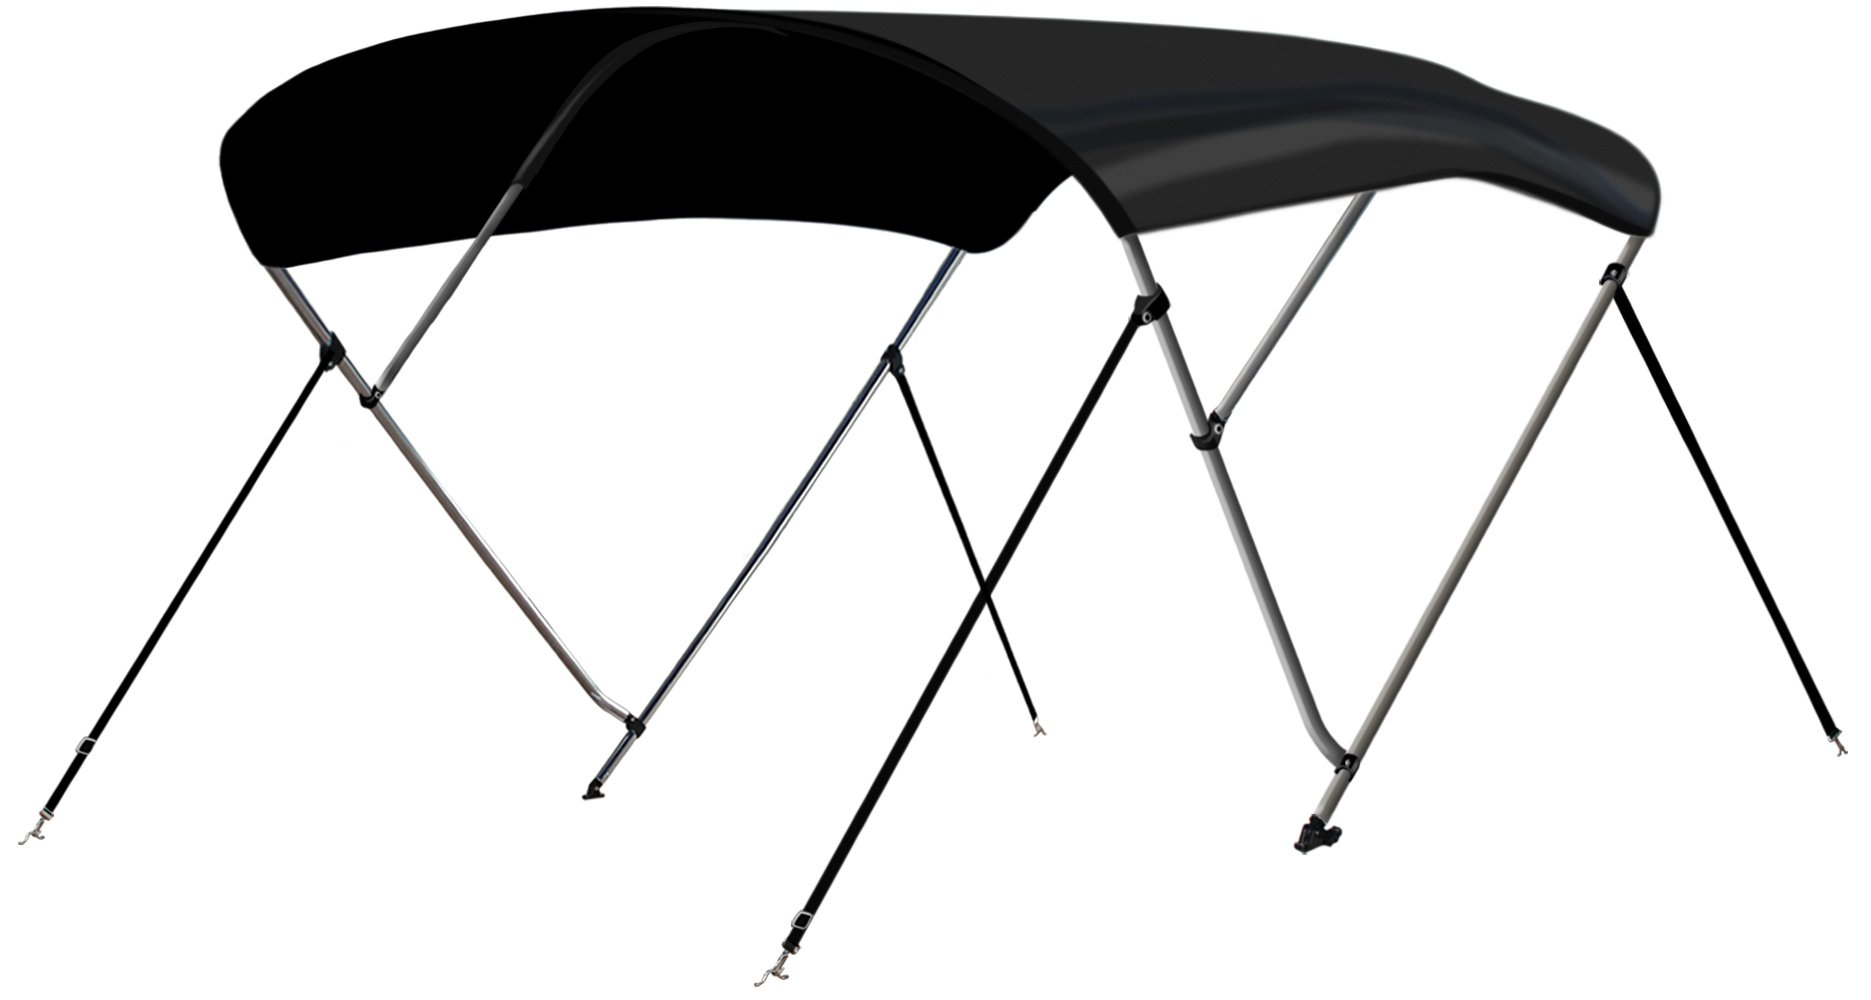 Leader Accessories 3 Bow Black 6'L x 46'' H x 54''-60'' W Bimini Top Boat Cover 4 Straps for Front and Rear Includes Mounting Hardwares with 1 Inch Aluminum Frame